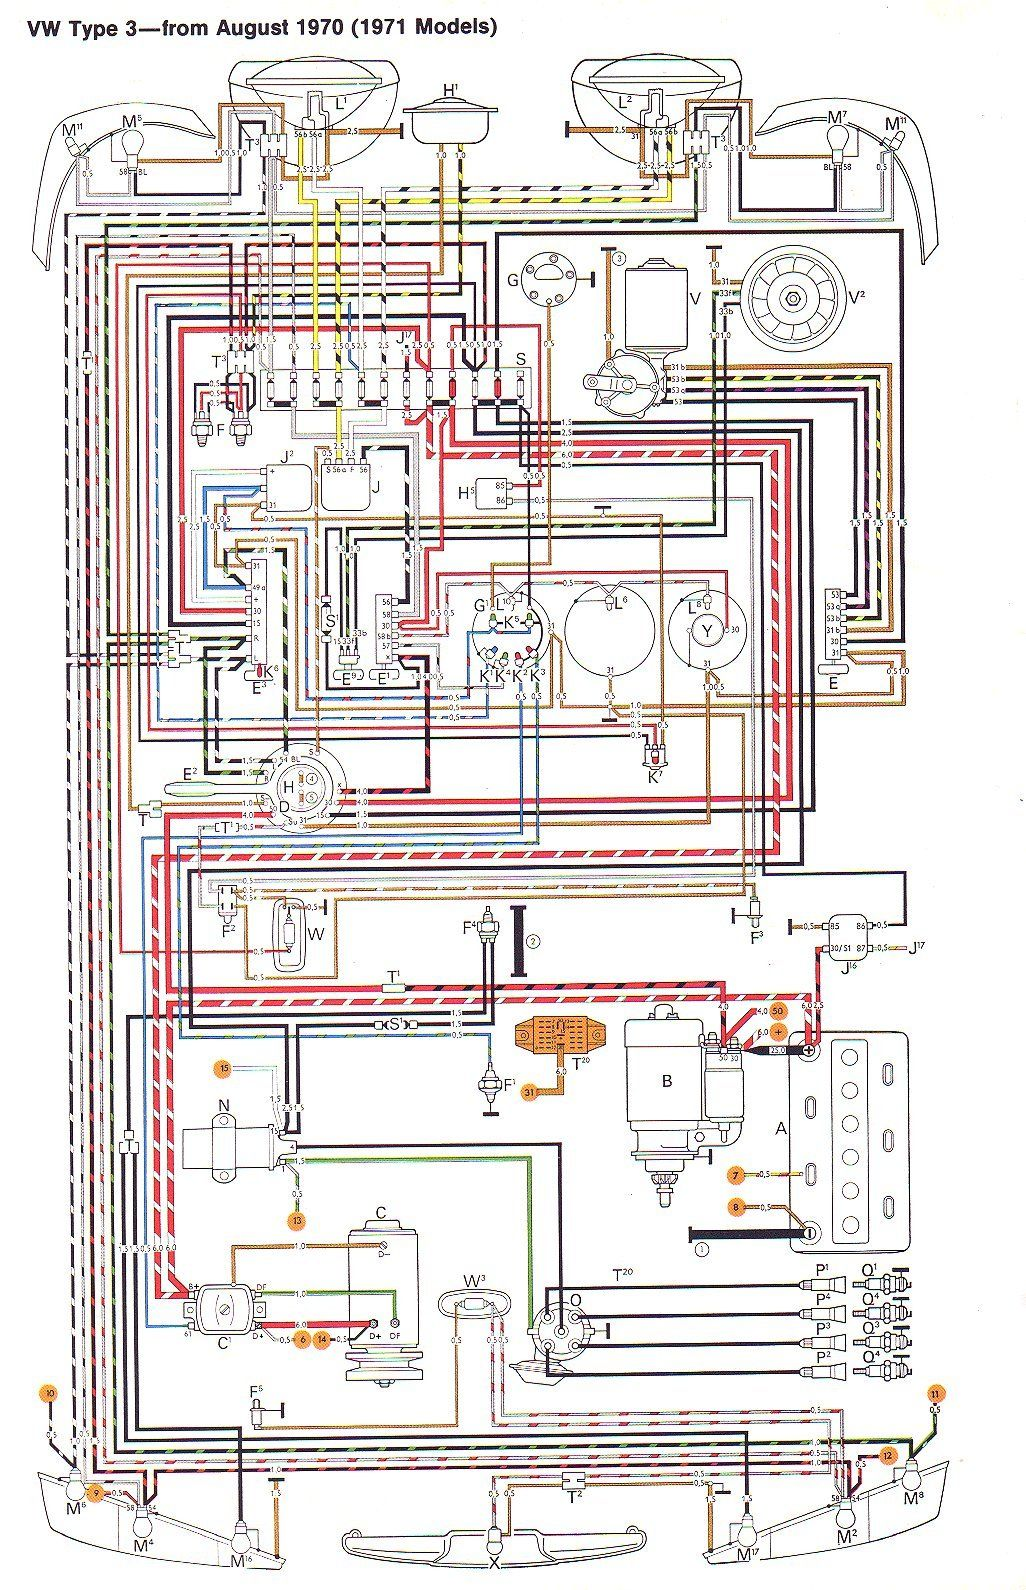 e0db58370f79a63d02d45f00cf63f44a 71 vw t3 wiring diagram car projects pinterest volkswagen 1971 vw bus wiring diagram at bakdesigns.co